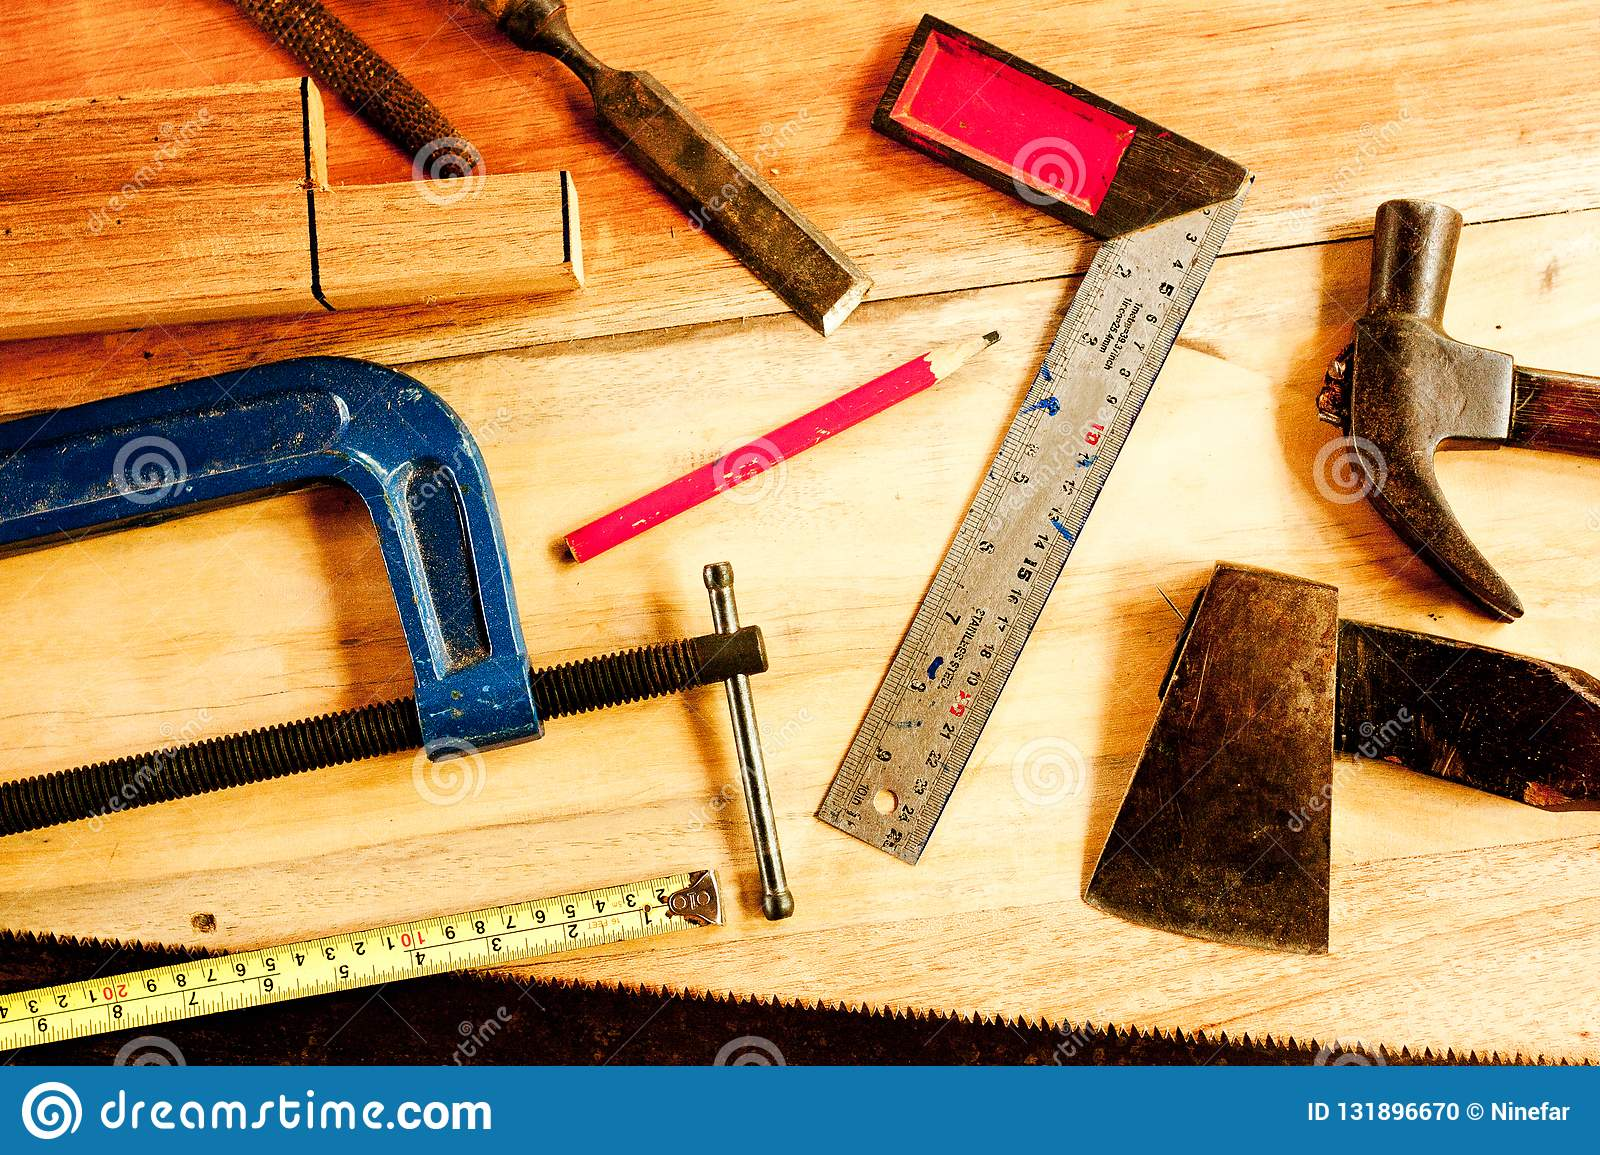 Machinist Square , Wood Pencil, Hammer, Saw, Clamp, Chisel